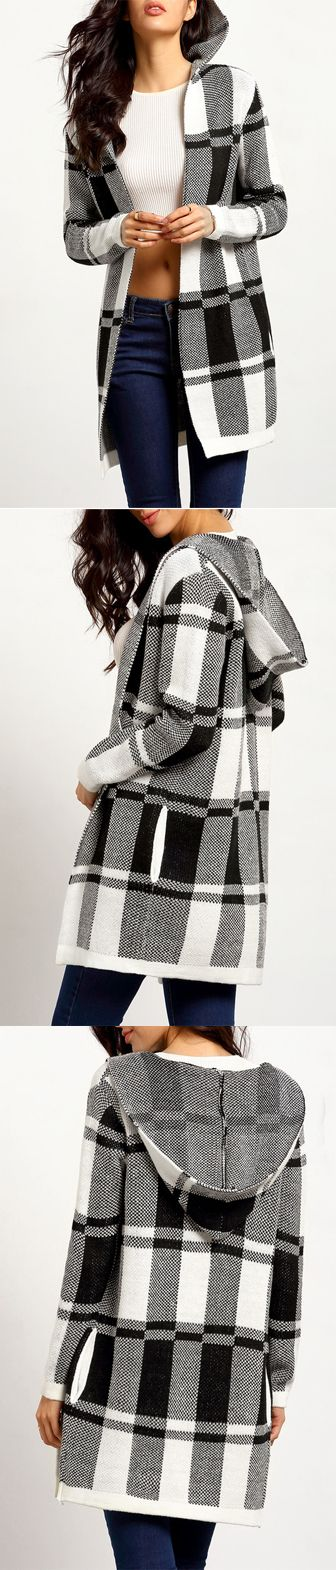 Downplay your winter streetstyle in a casual way with this black hooded plaid cardigan. Crafted in a straight cut bodice, long sleeves, and a hoodie.